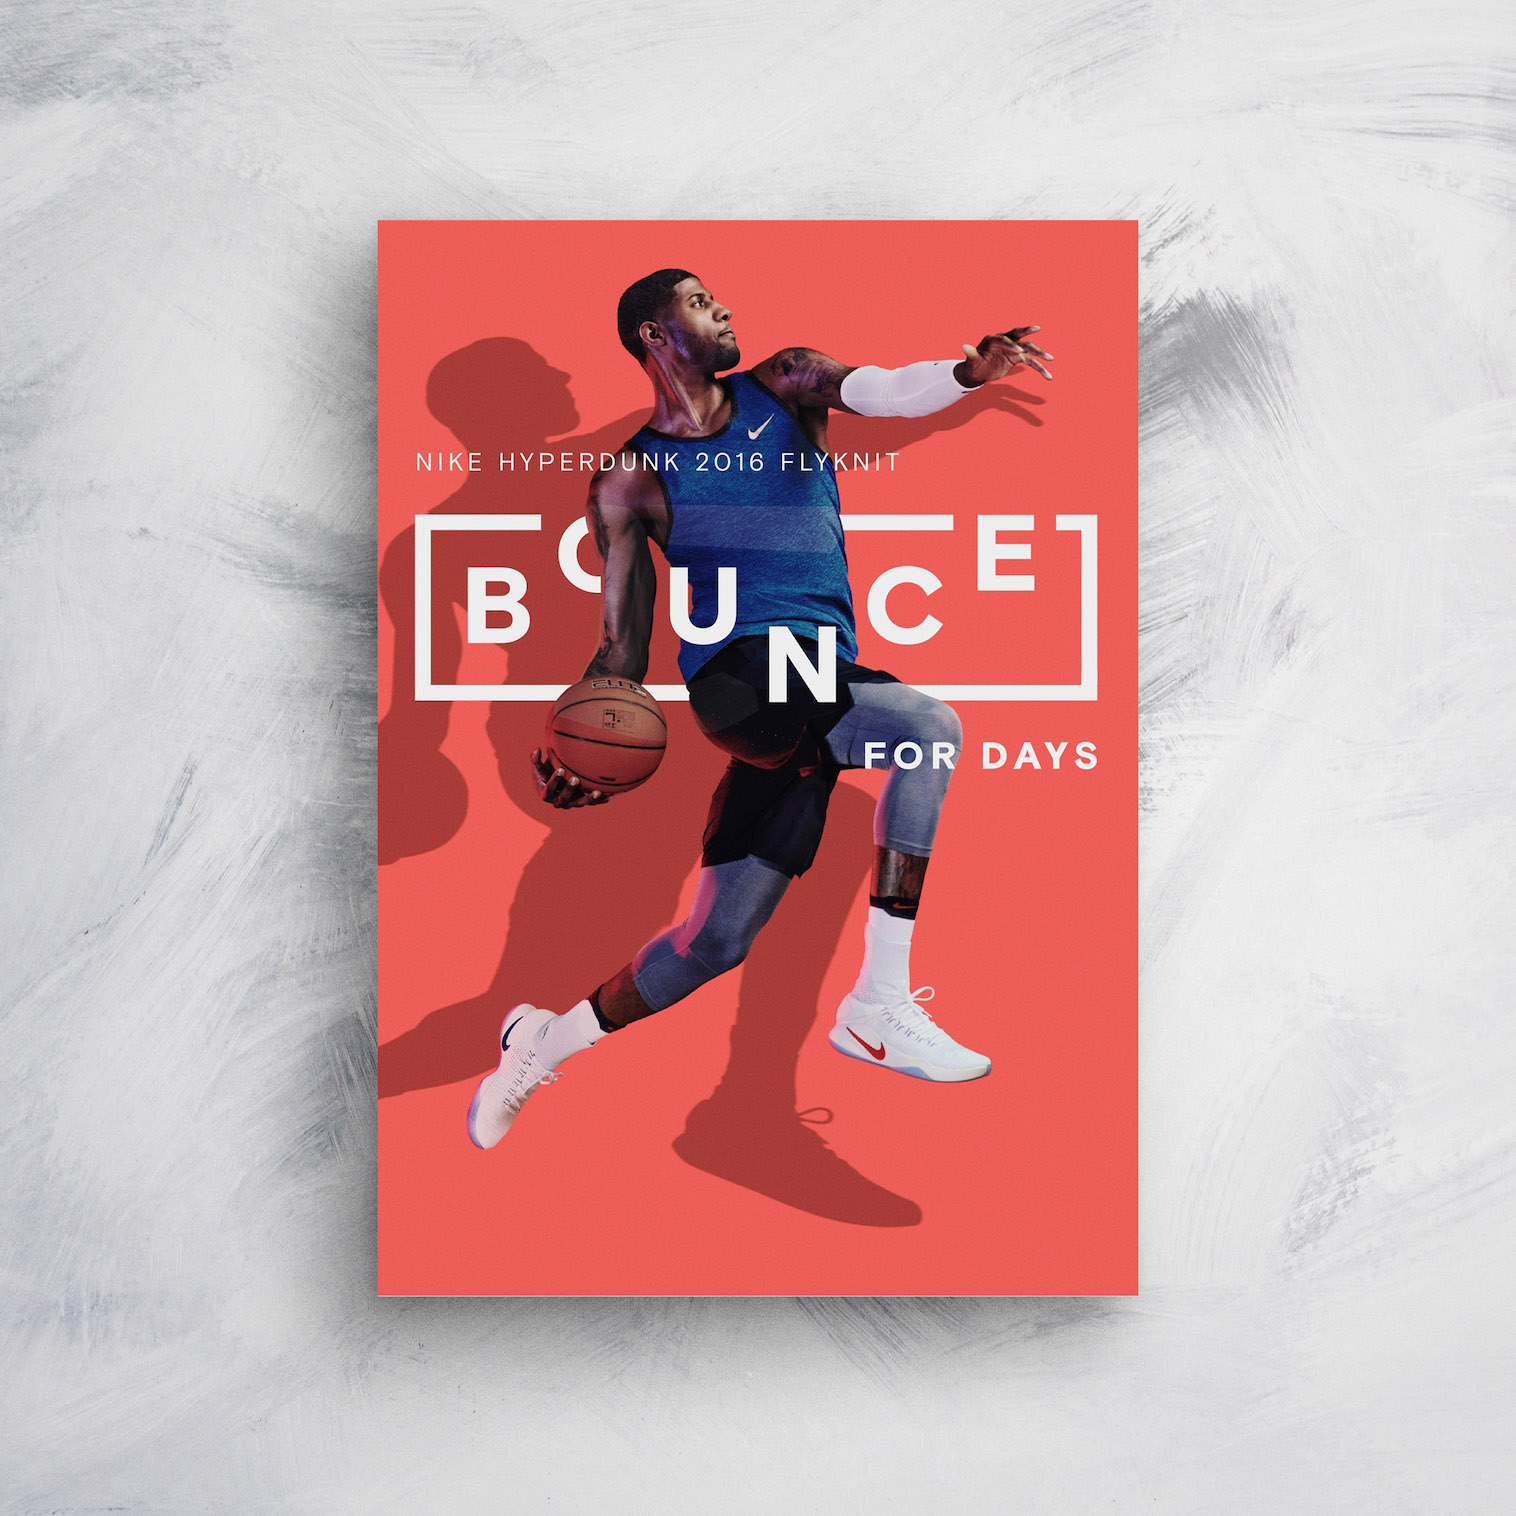 Nike Bounce For Days Product Poster Example - Venngage ...